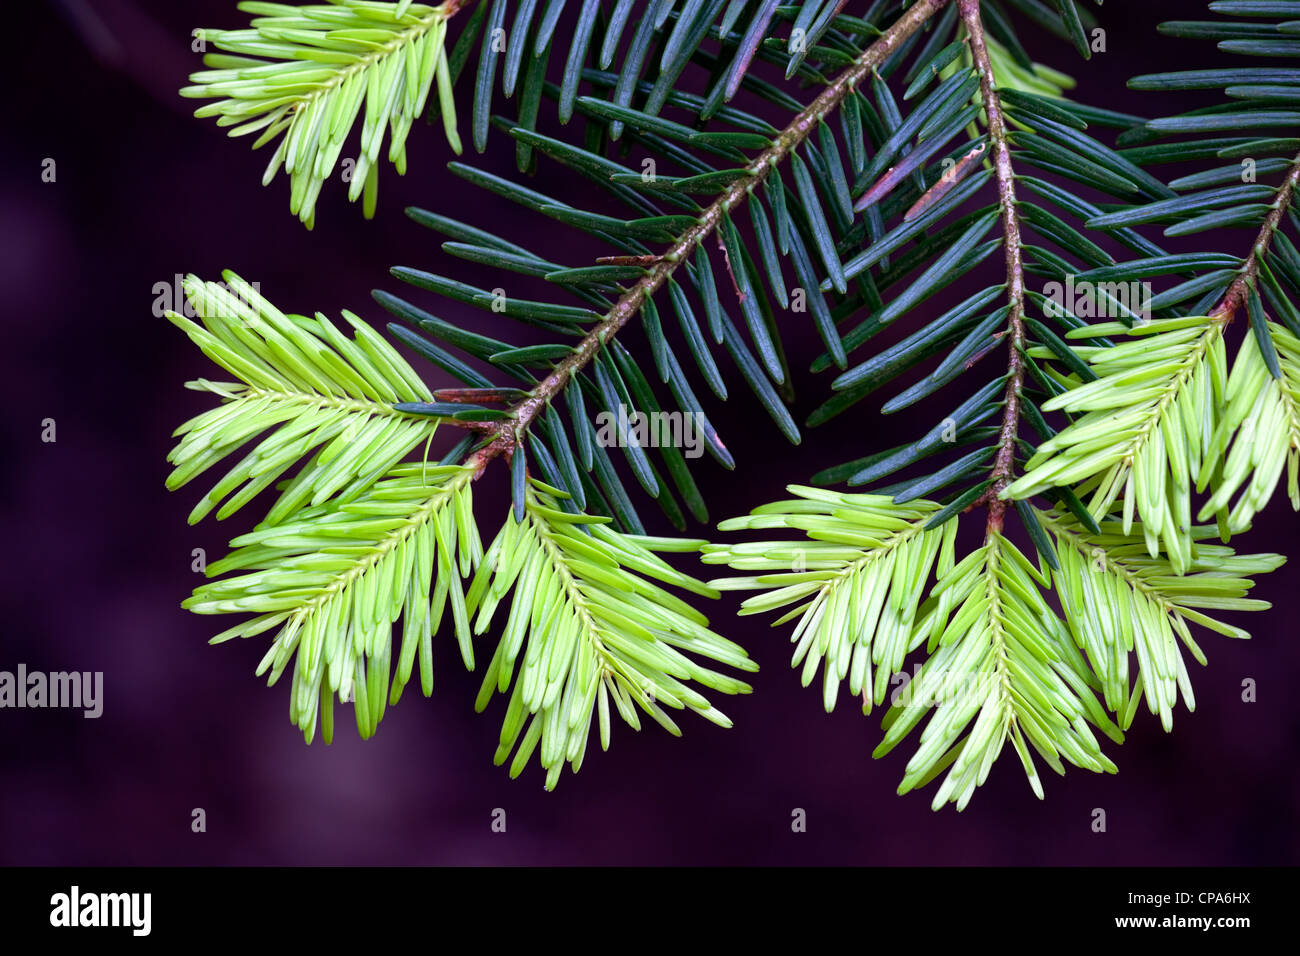 New shoots on Western Hemlock Tsuga heterophylla needles in Spring - Stock Image